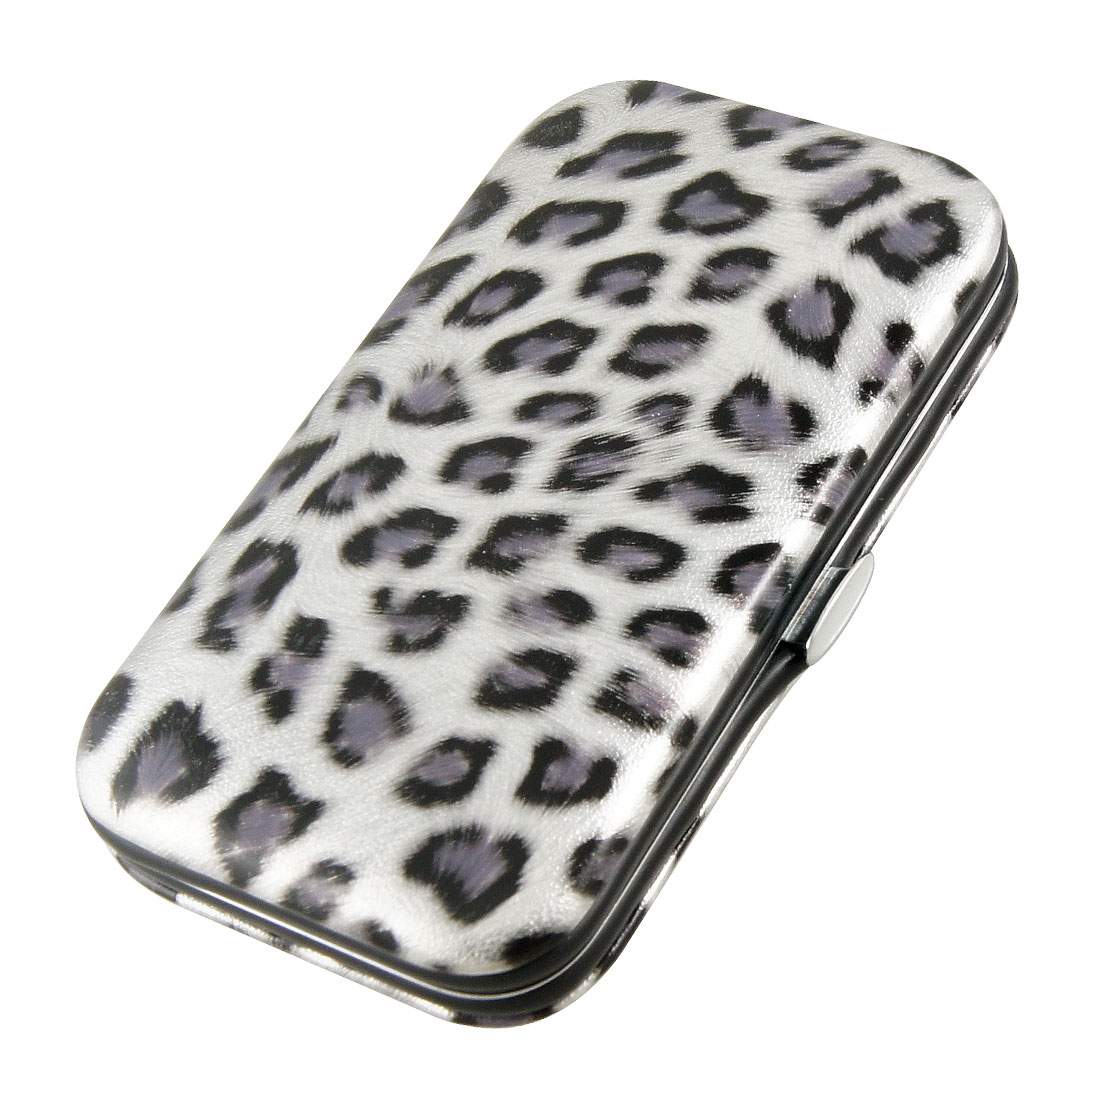 6 in 1 Metal Nail Clipper File Manicure Set w Gray Black Leopard Prints Case